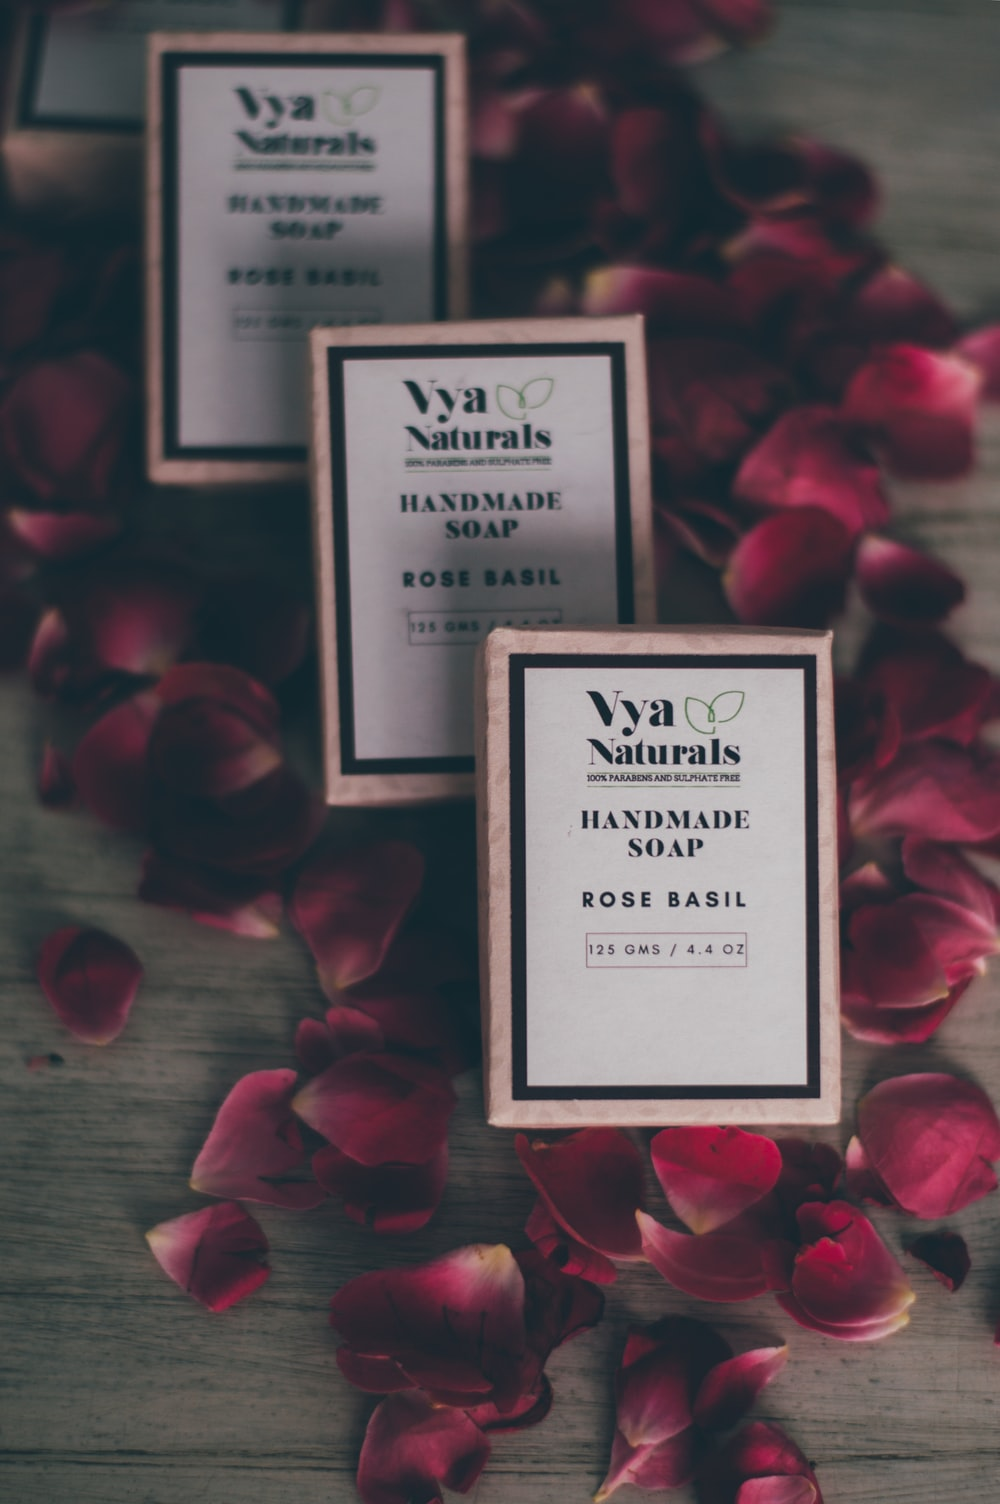 Vya Naturals Rose Basil Handmade Soap | HD photo by Hans Vivek